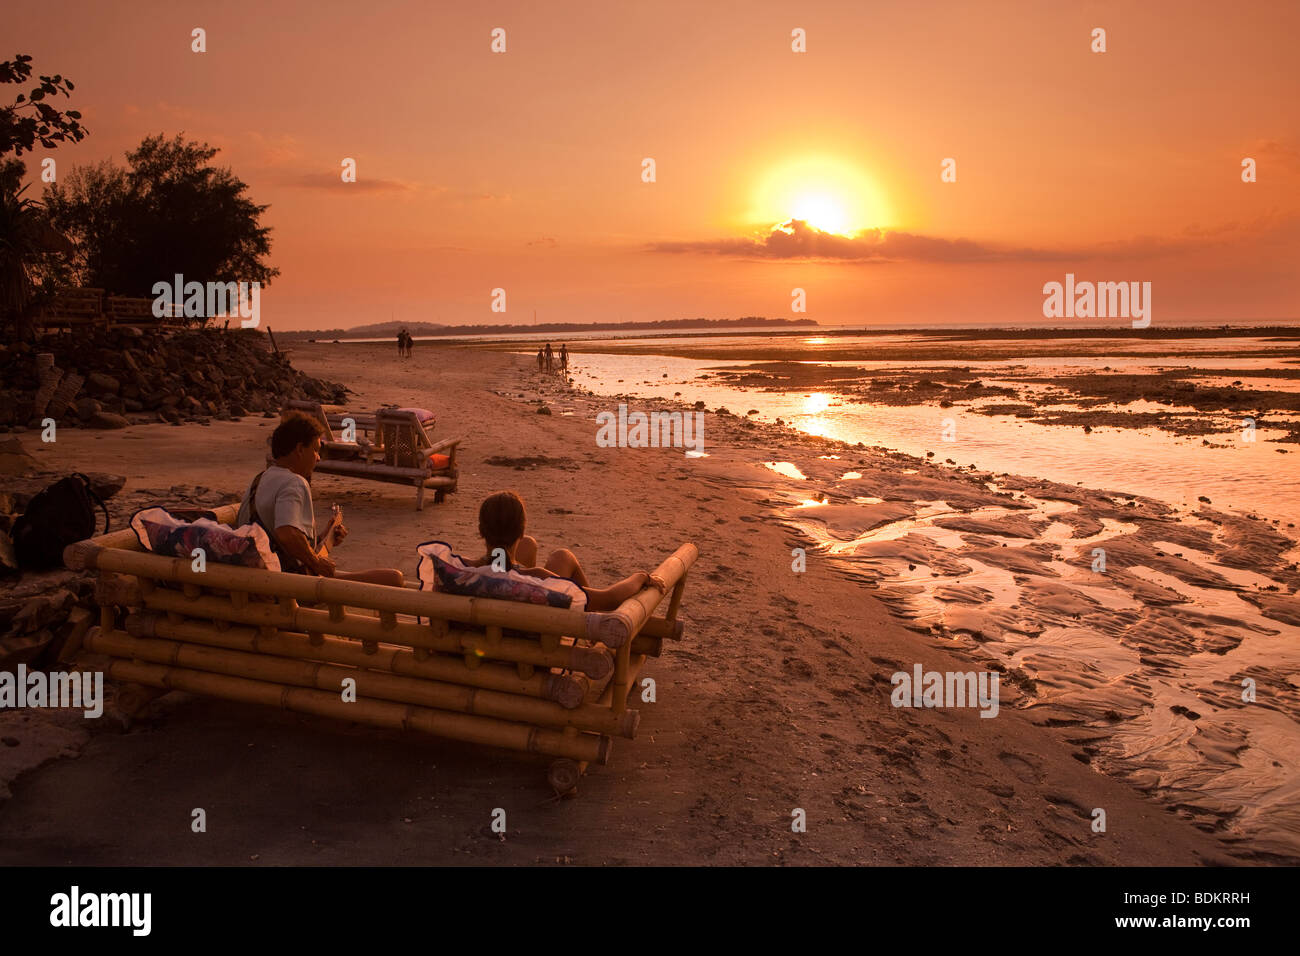 Indonesia, Lombok, Gili Air, north coast, sunset point, people enjoying setting sun playing guitar - Stock Image